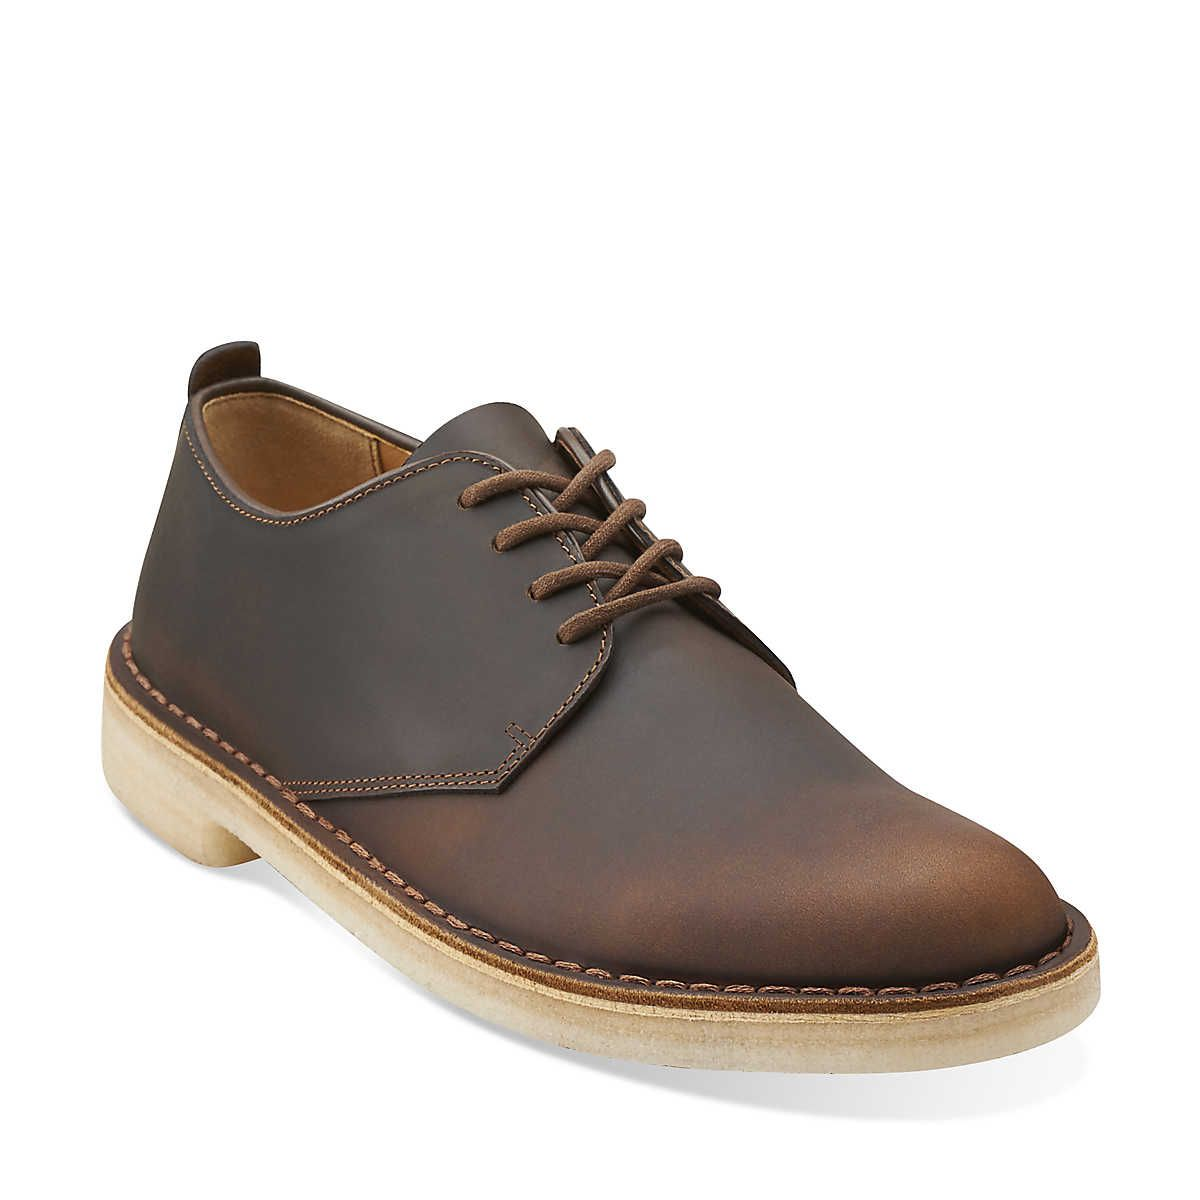 Desert London in Beeswax Leather - Mens Shoes from Clarks